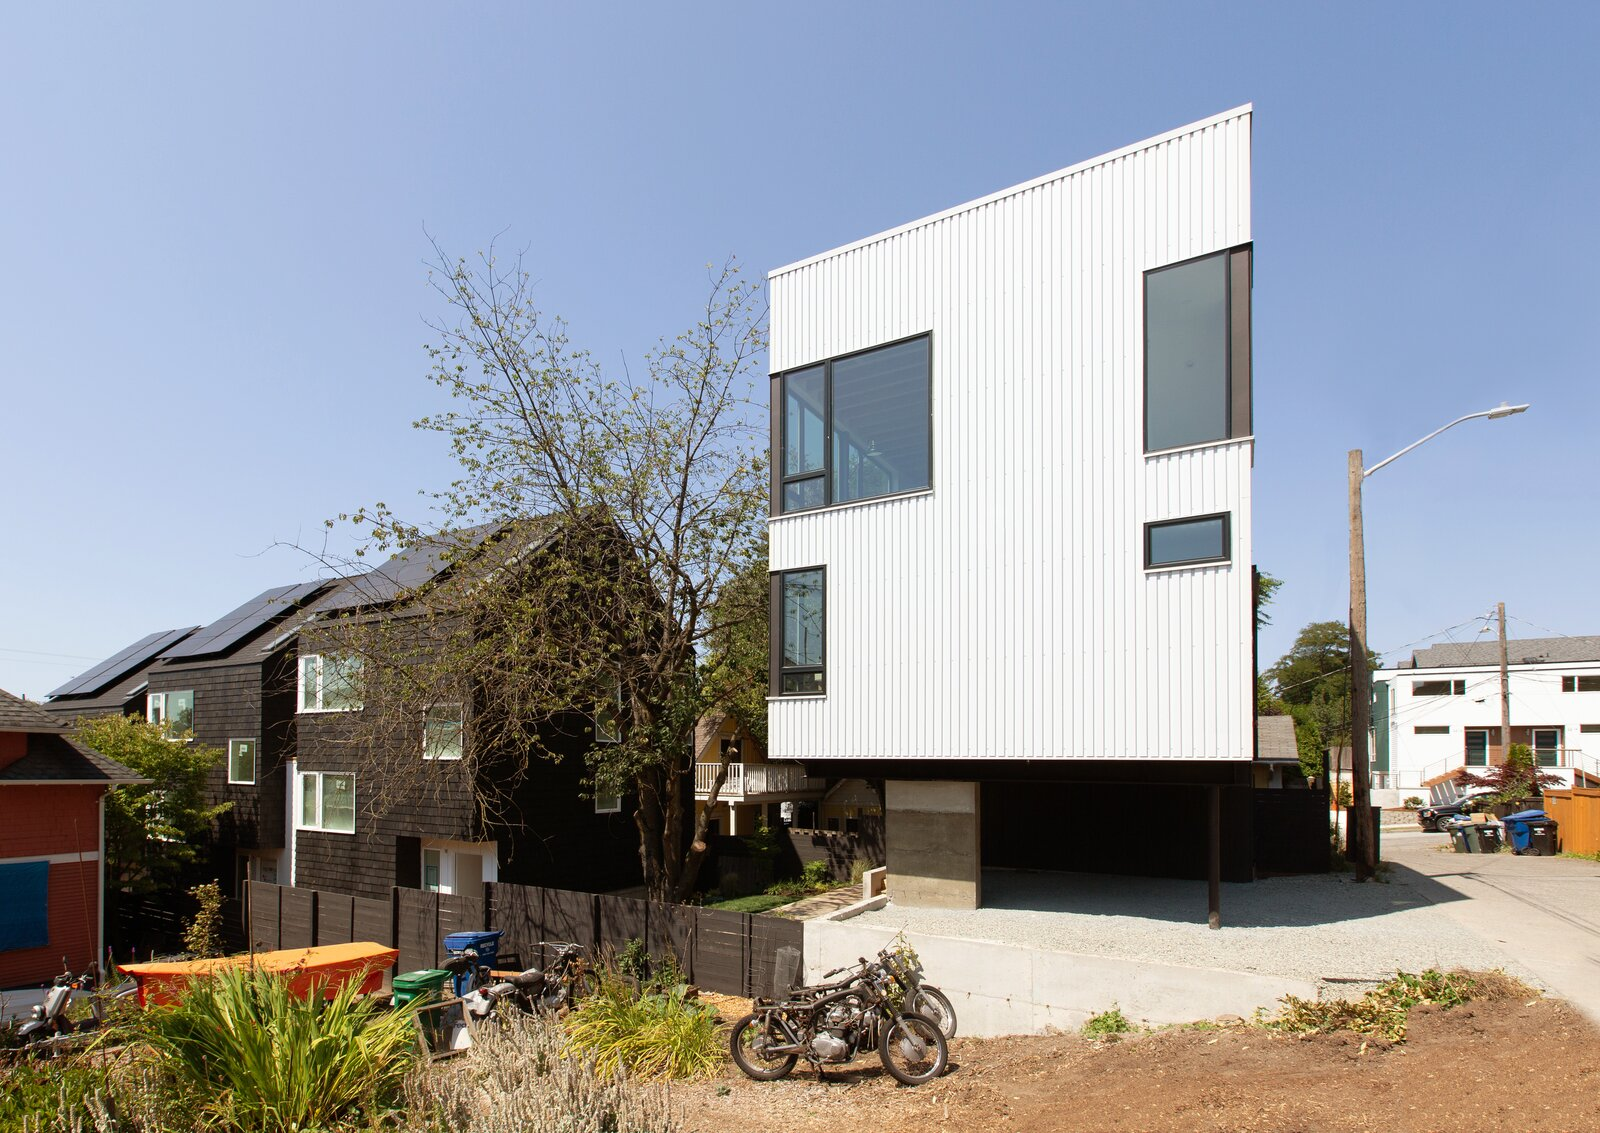 Exterior of The Lookout by Hybrid Architecture